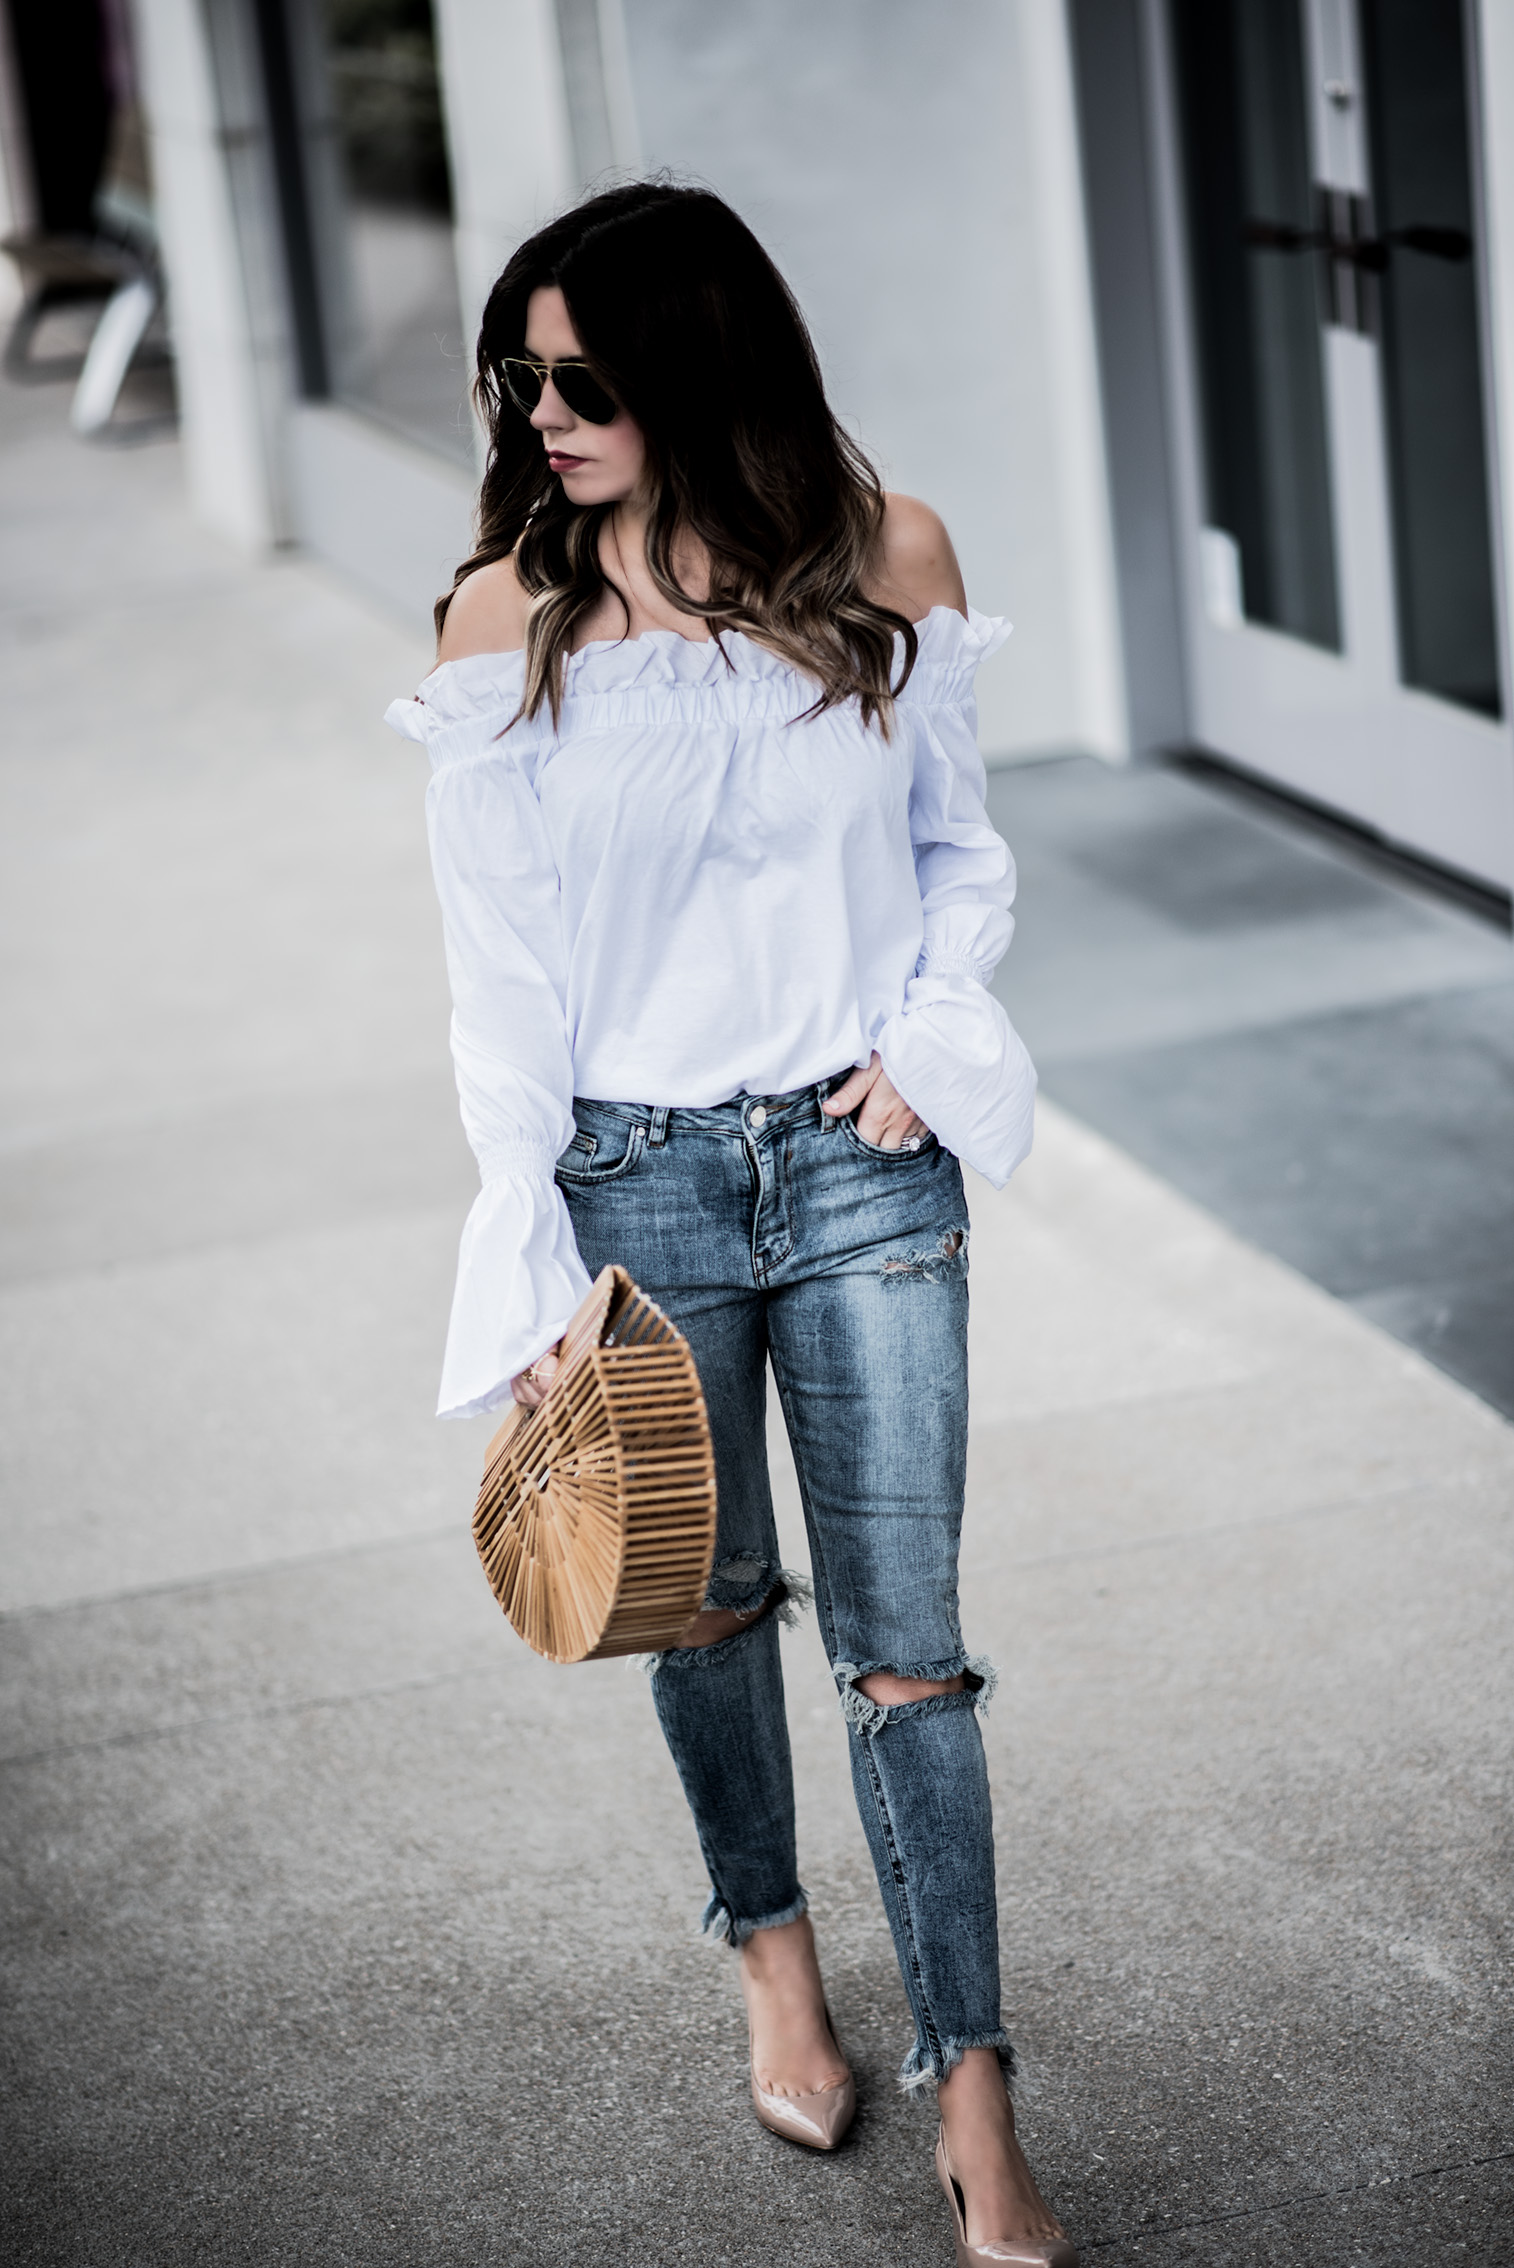 Tiffany Jais Houston fashion blogger rounding up 10 off the shoulder tops for spring | Outfit ideas for spring